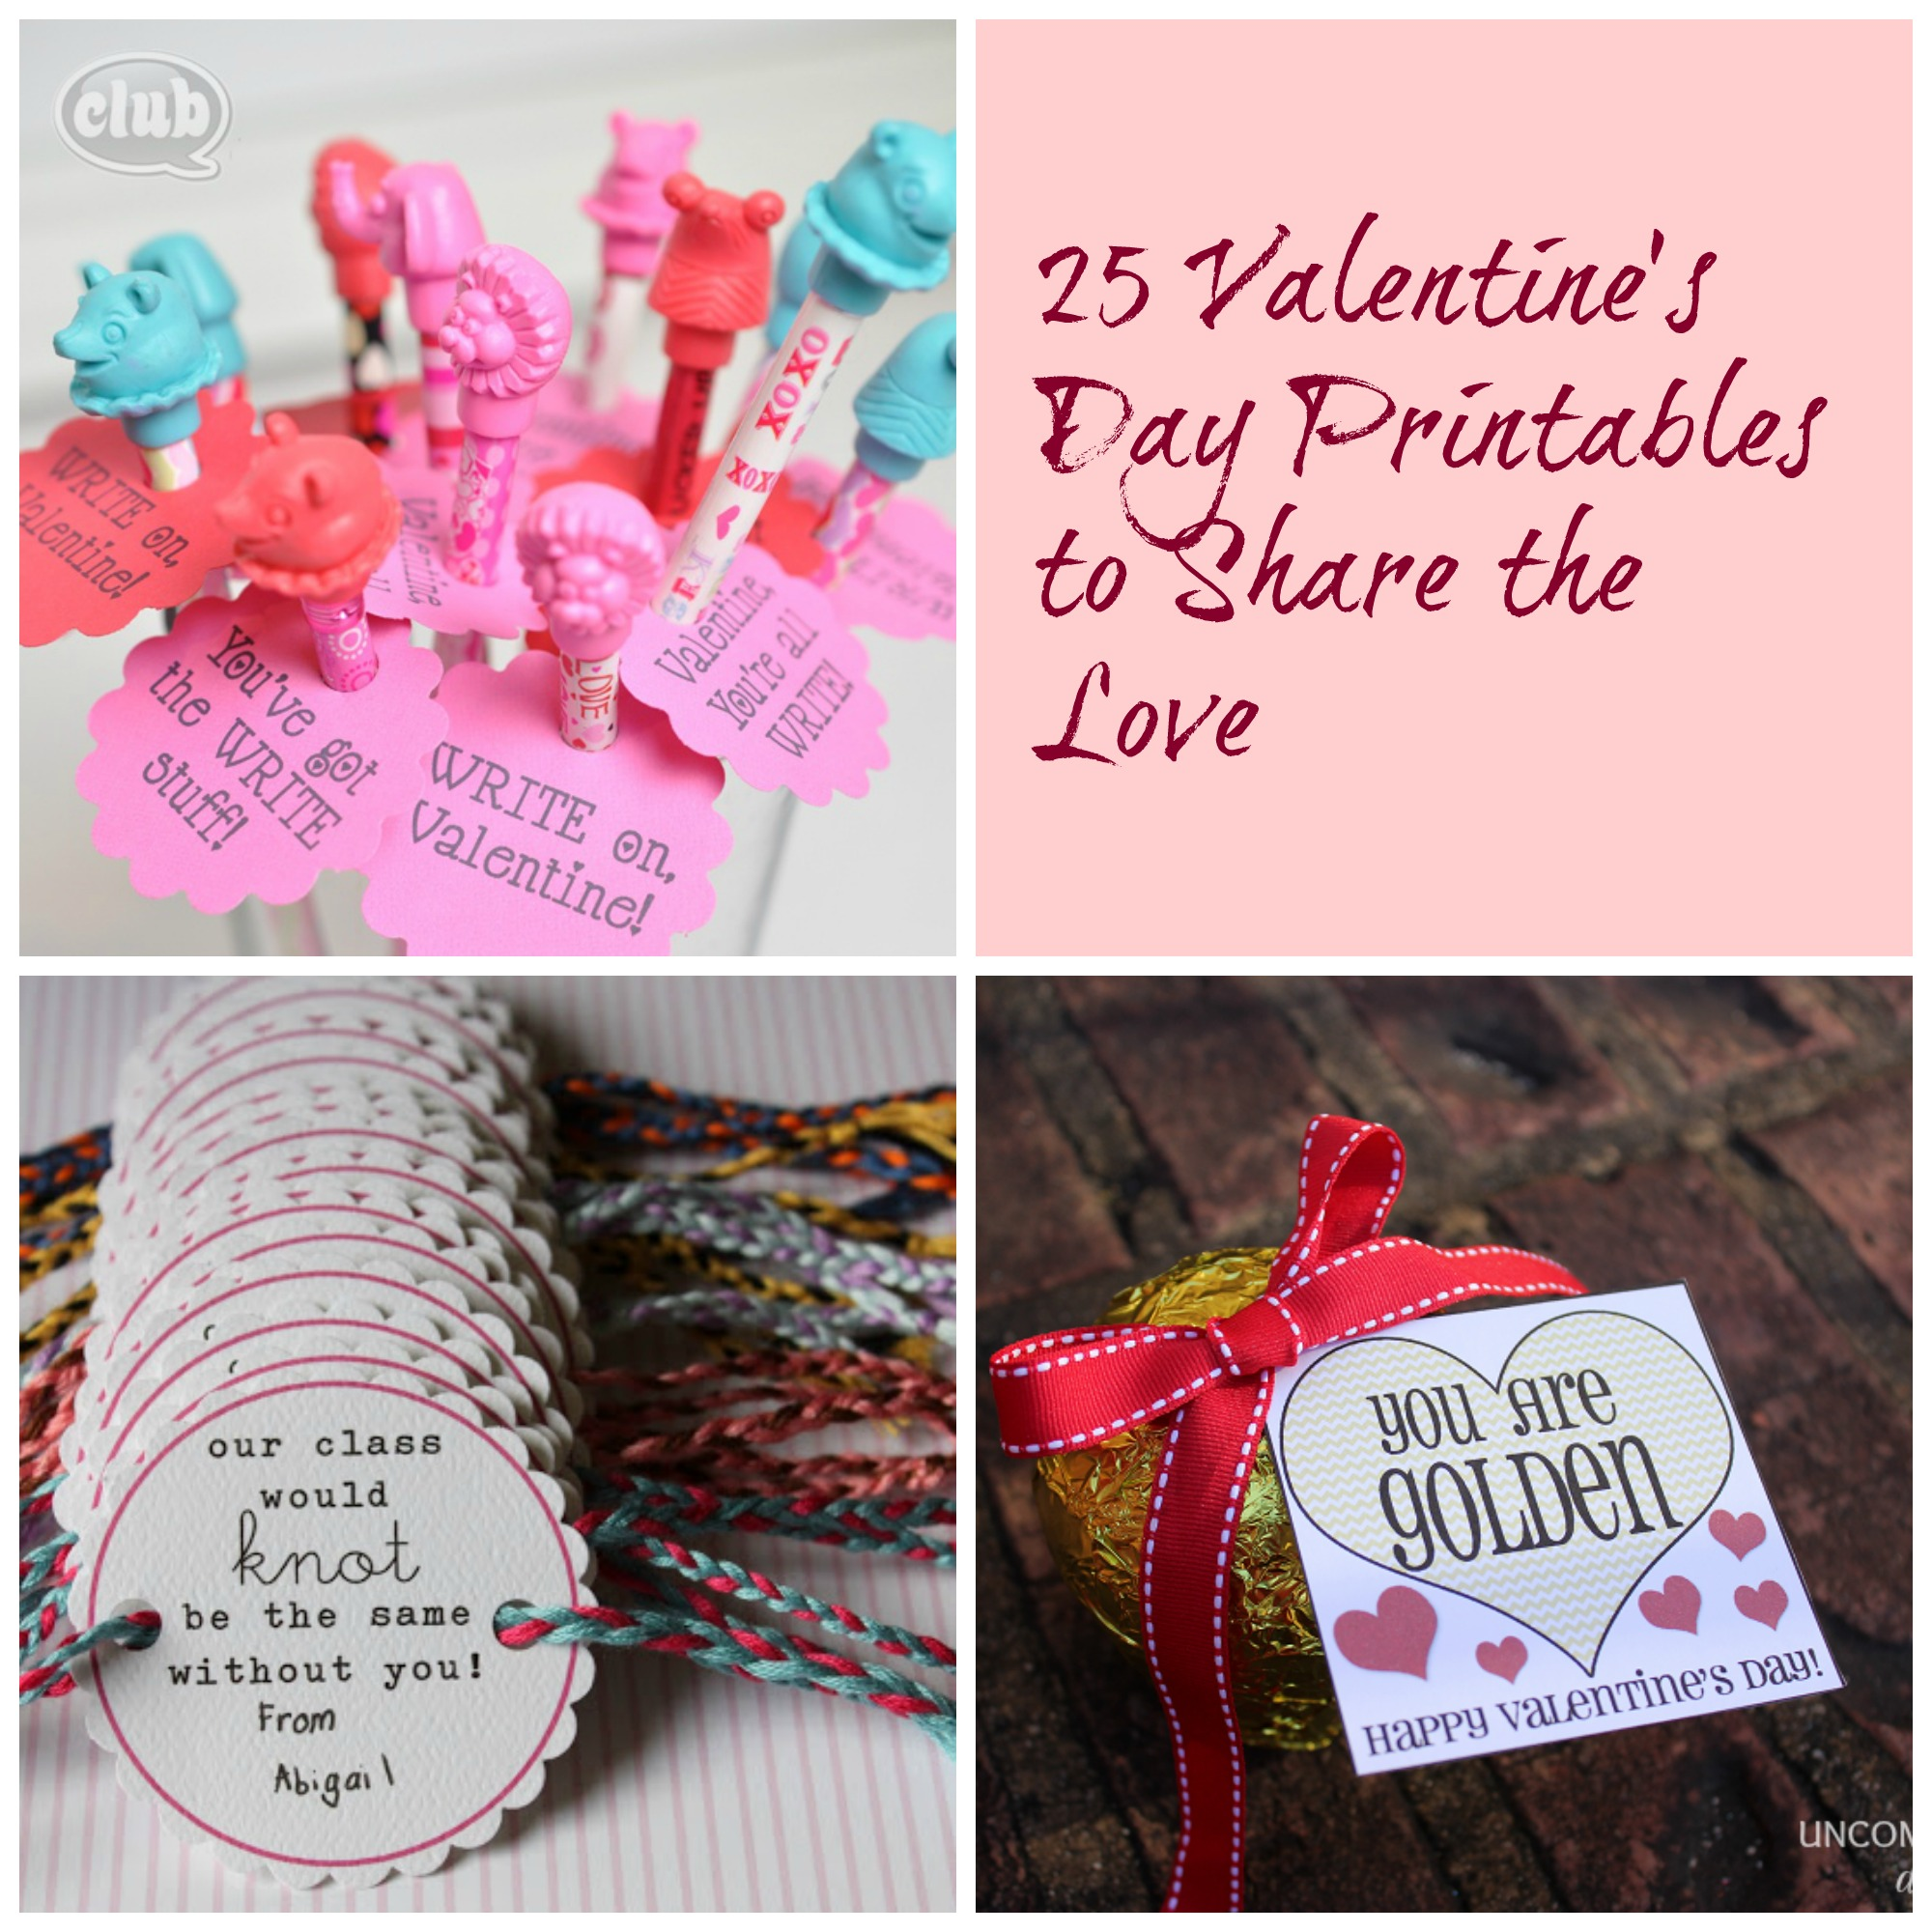 25 Valentine S Day Printables To Share The Love Club Chica Circle